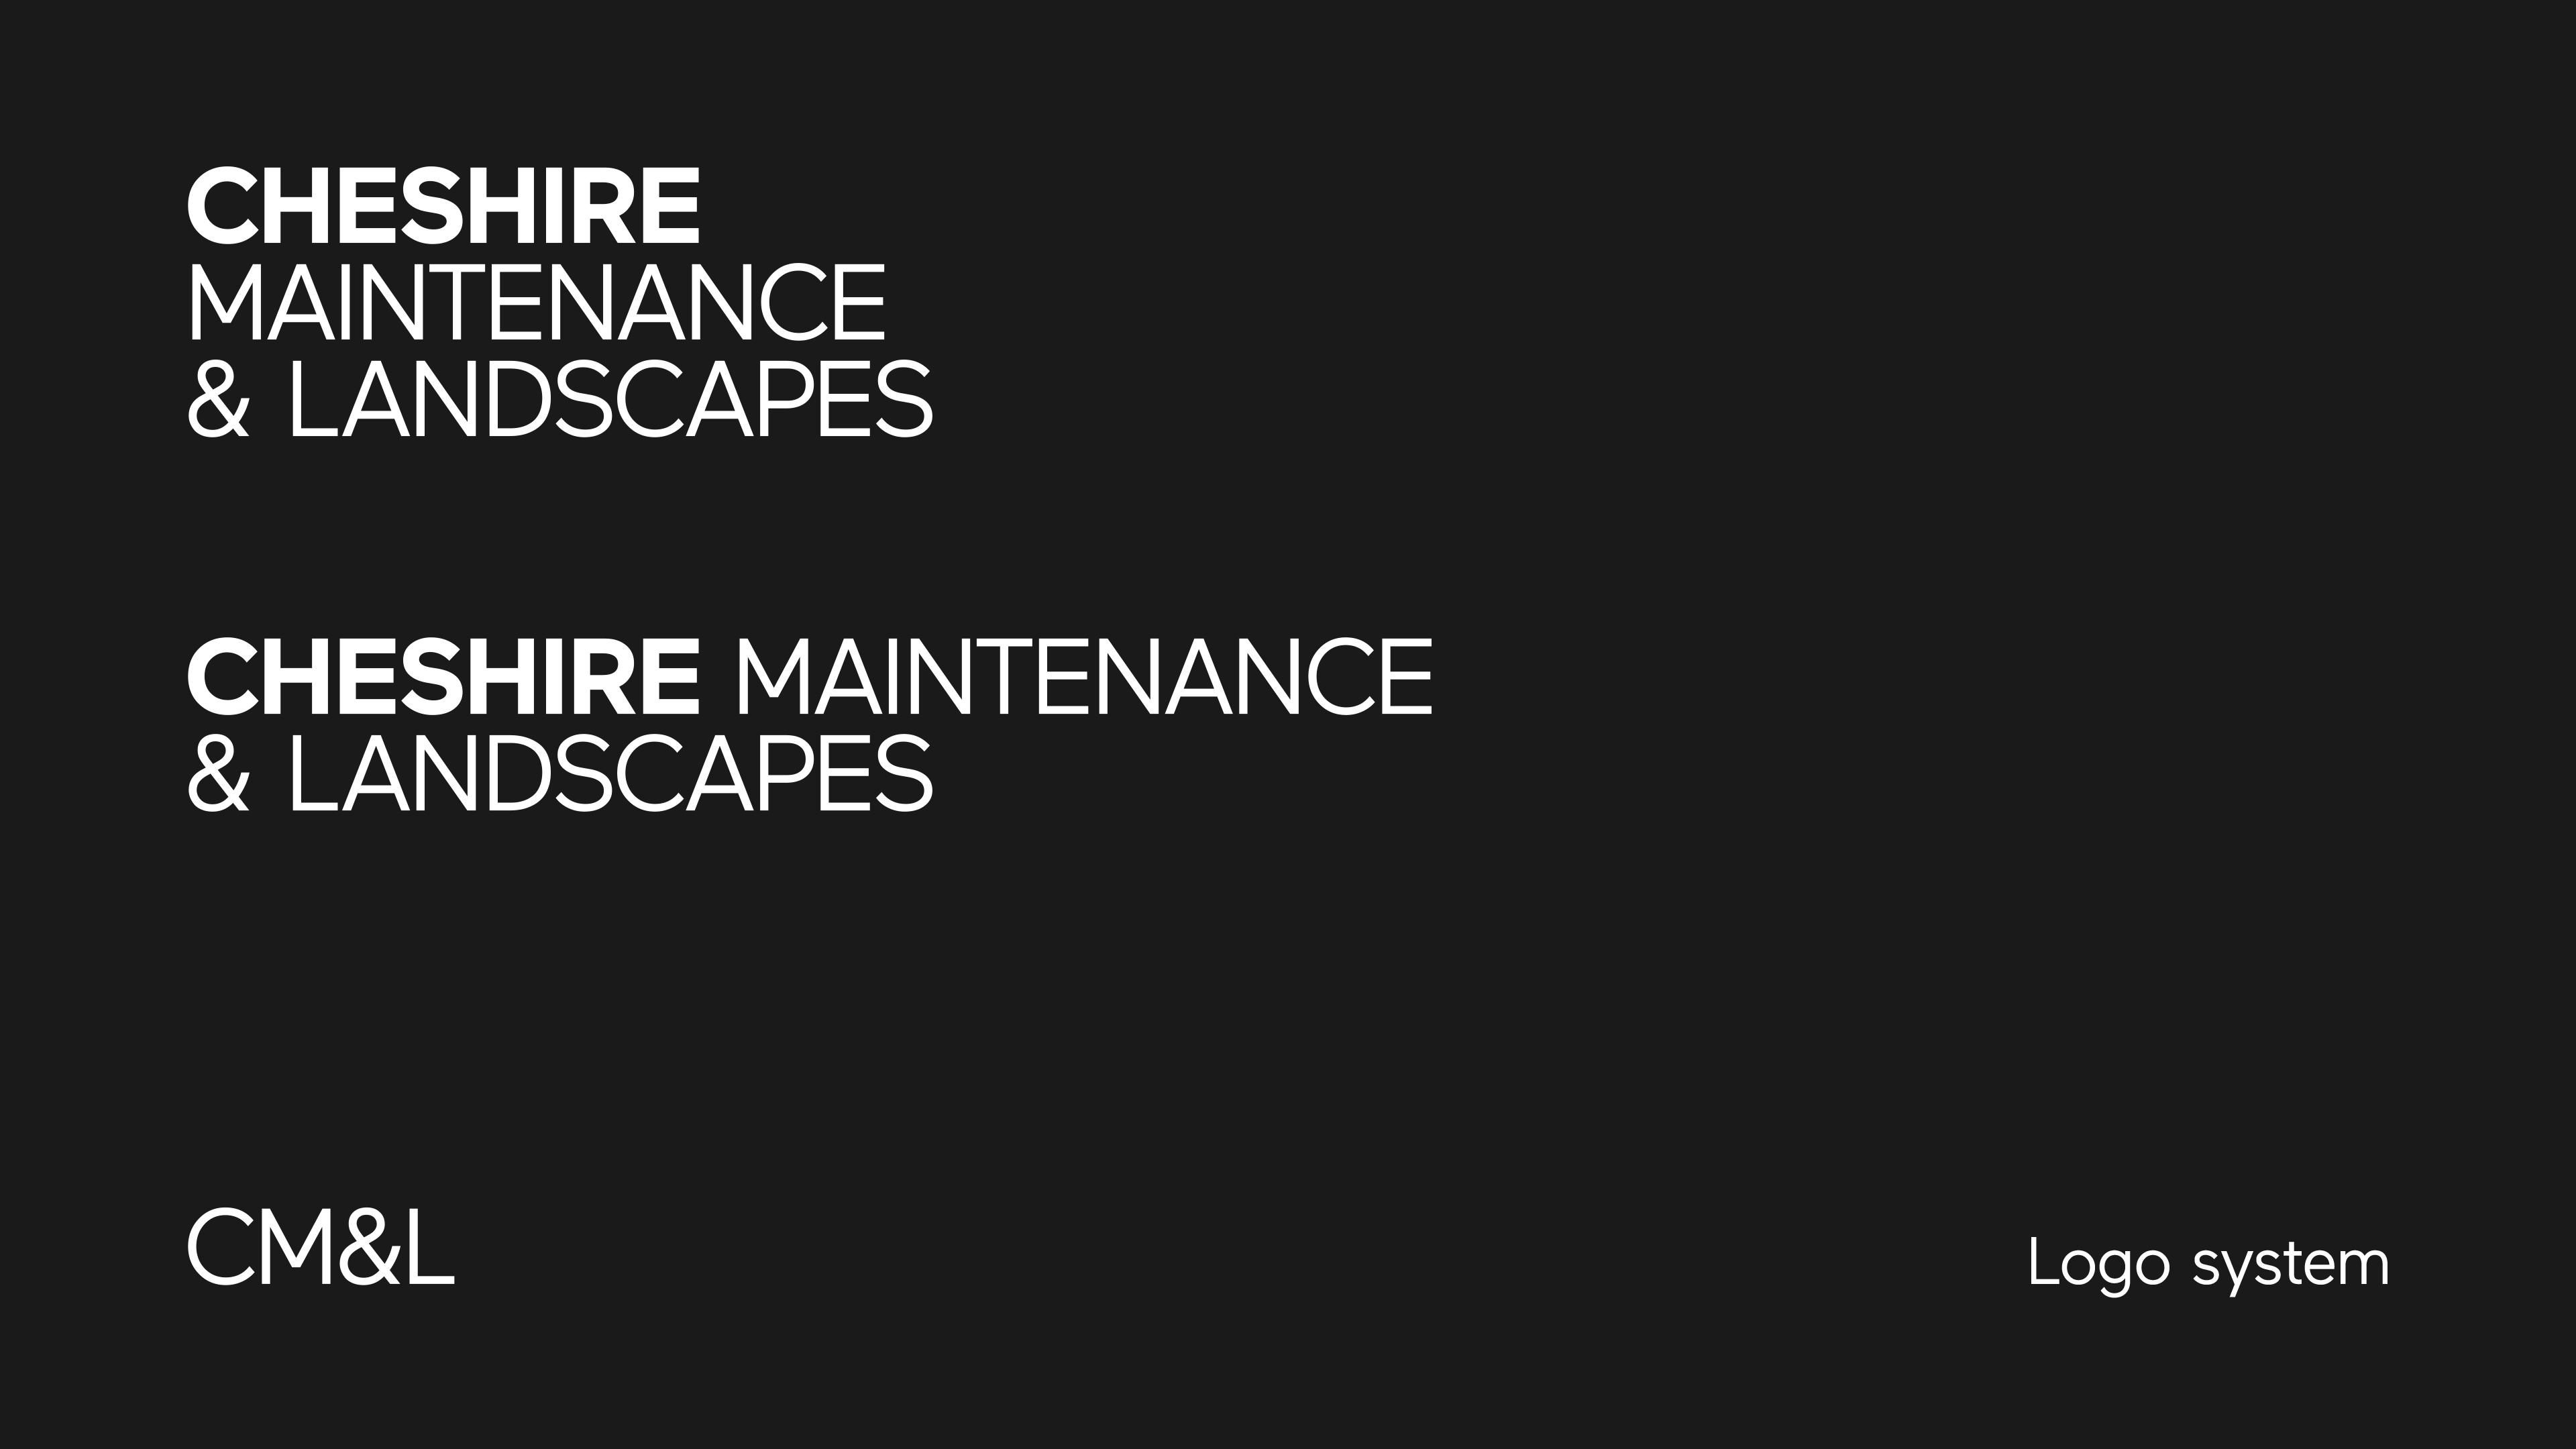 Cheshire Maintenance & Landscapes - Logo System